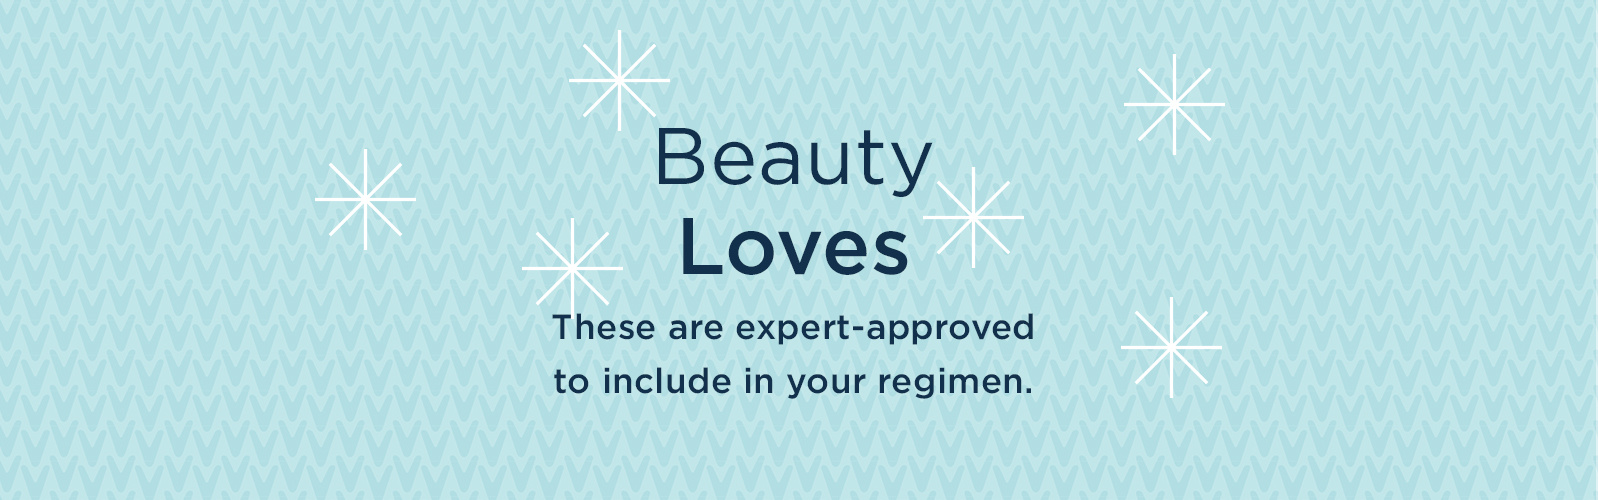 Beauty Loves  These are expert-approved to include in your regimen.